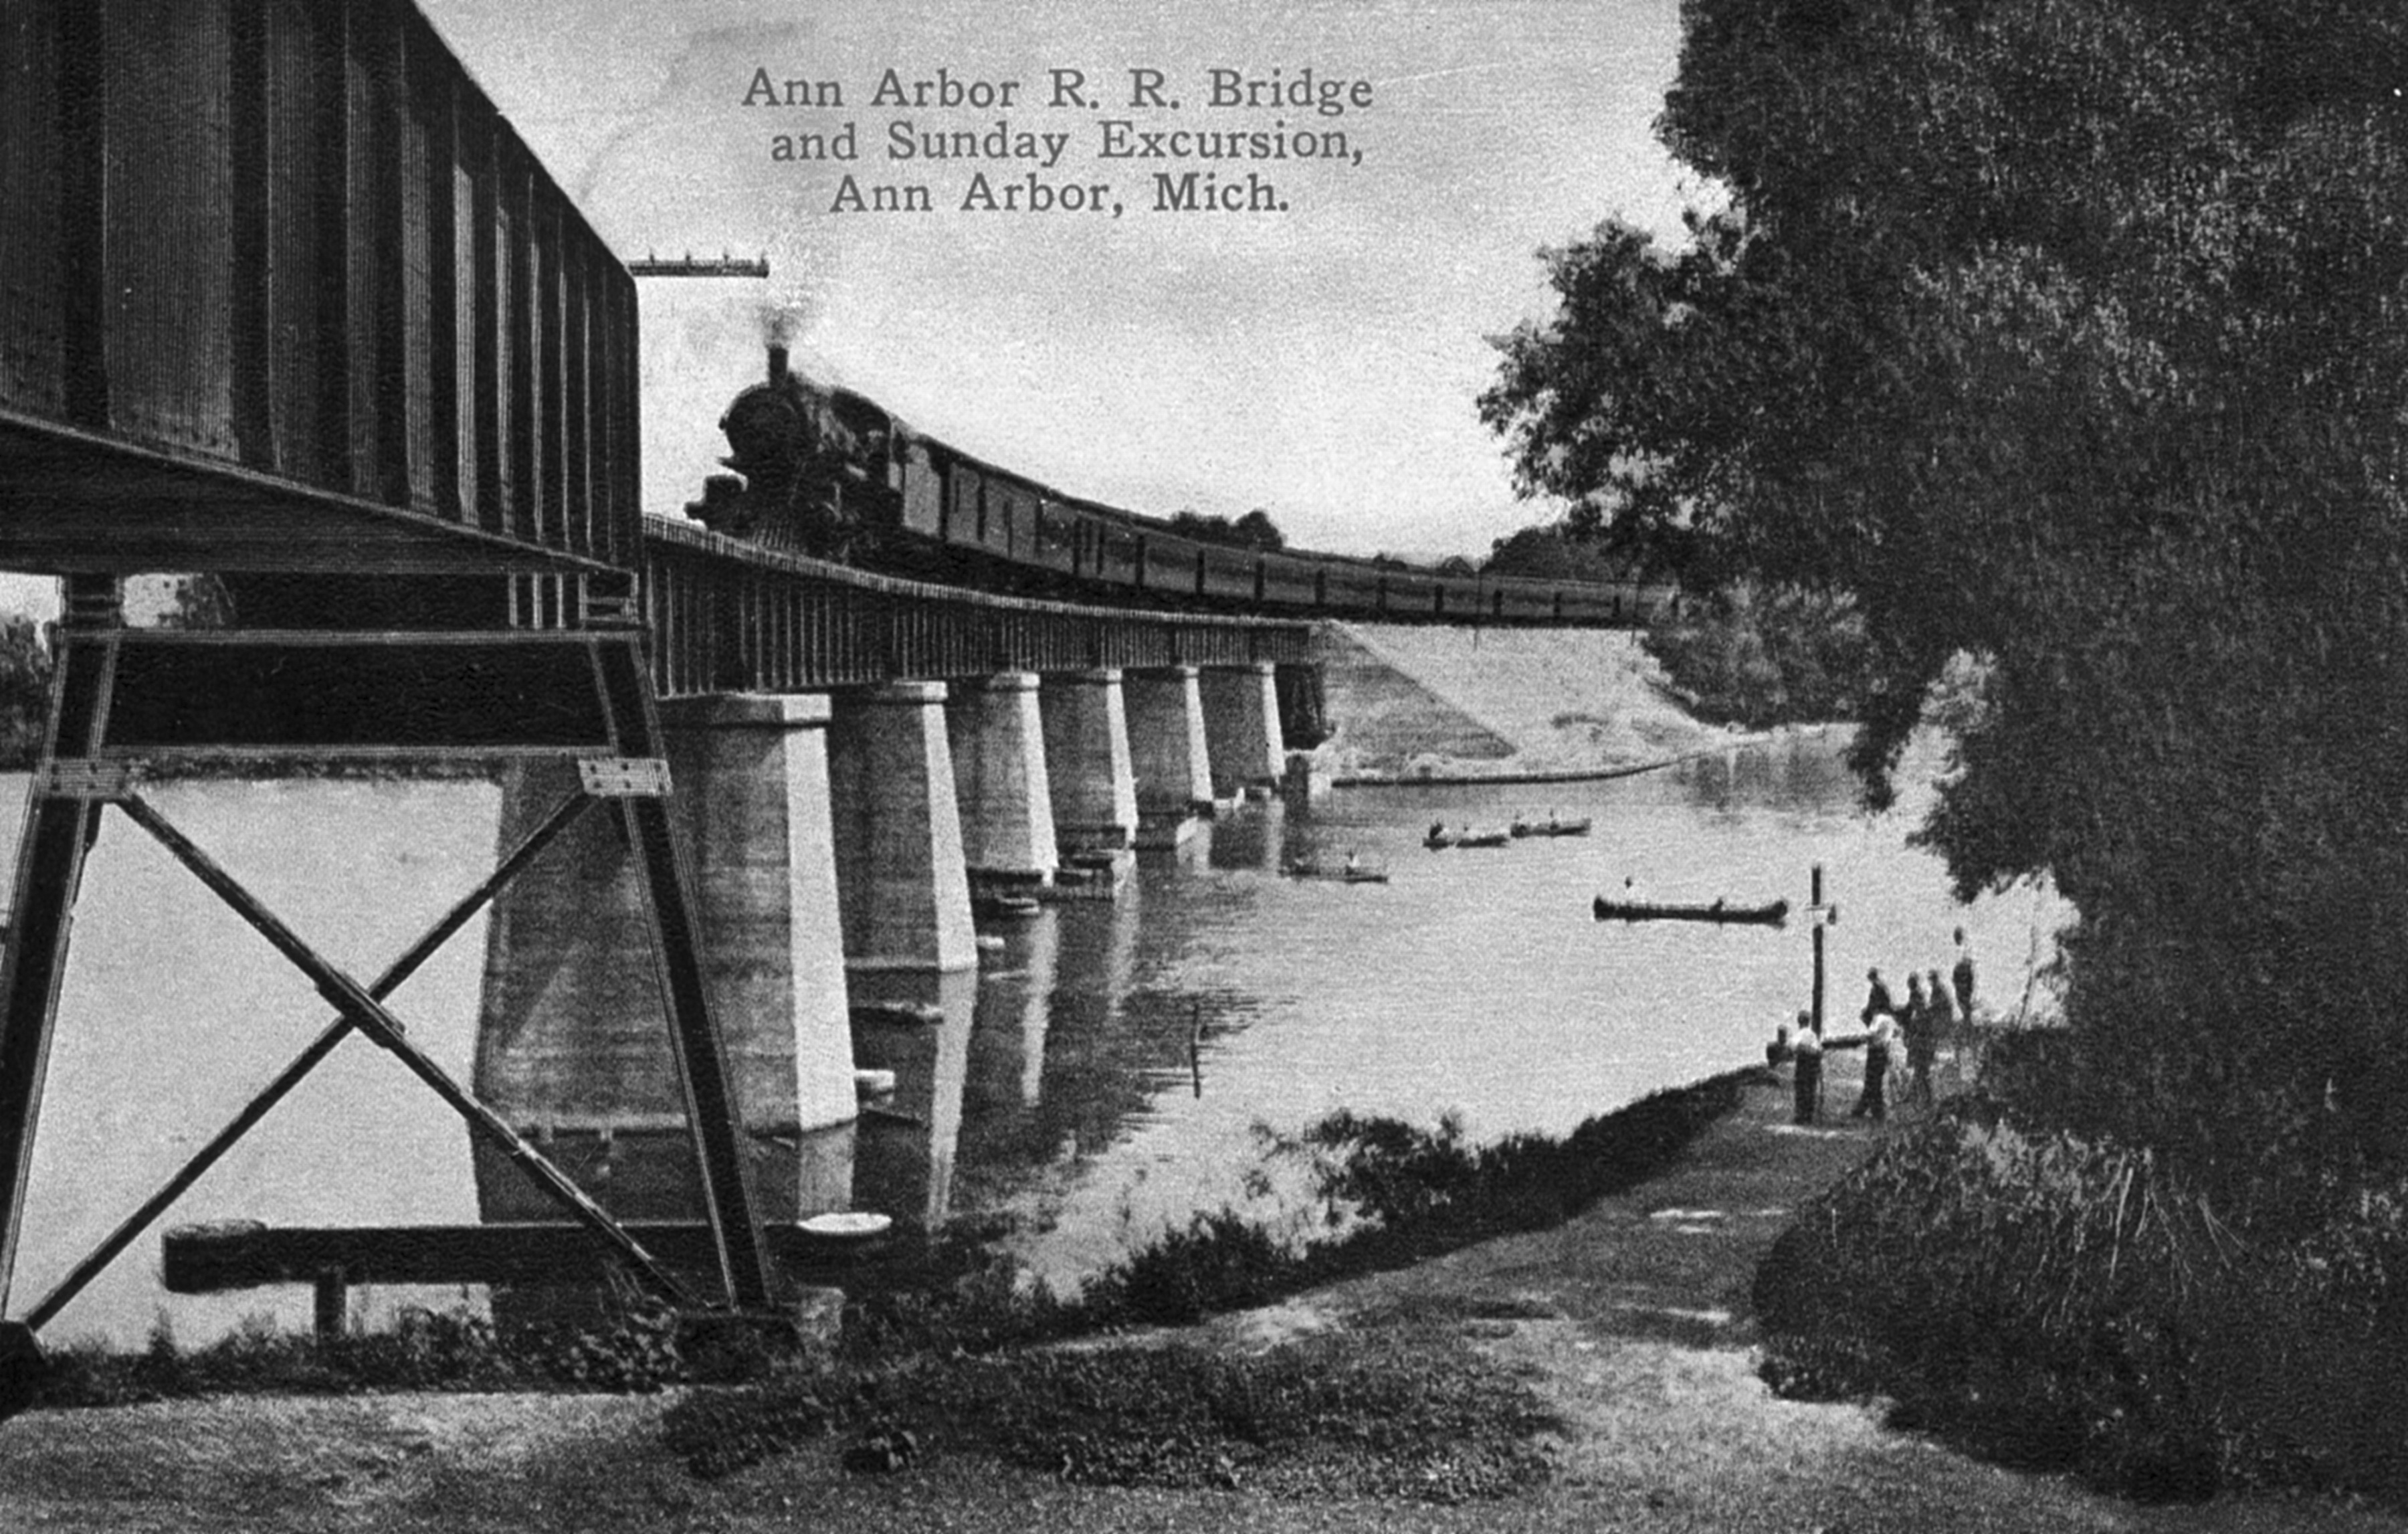 Ann Arbor Railroad crossing the Huron River image